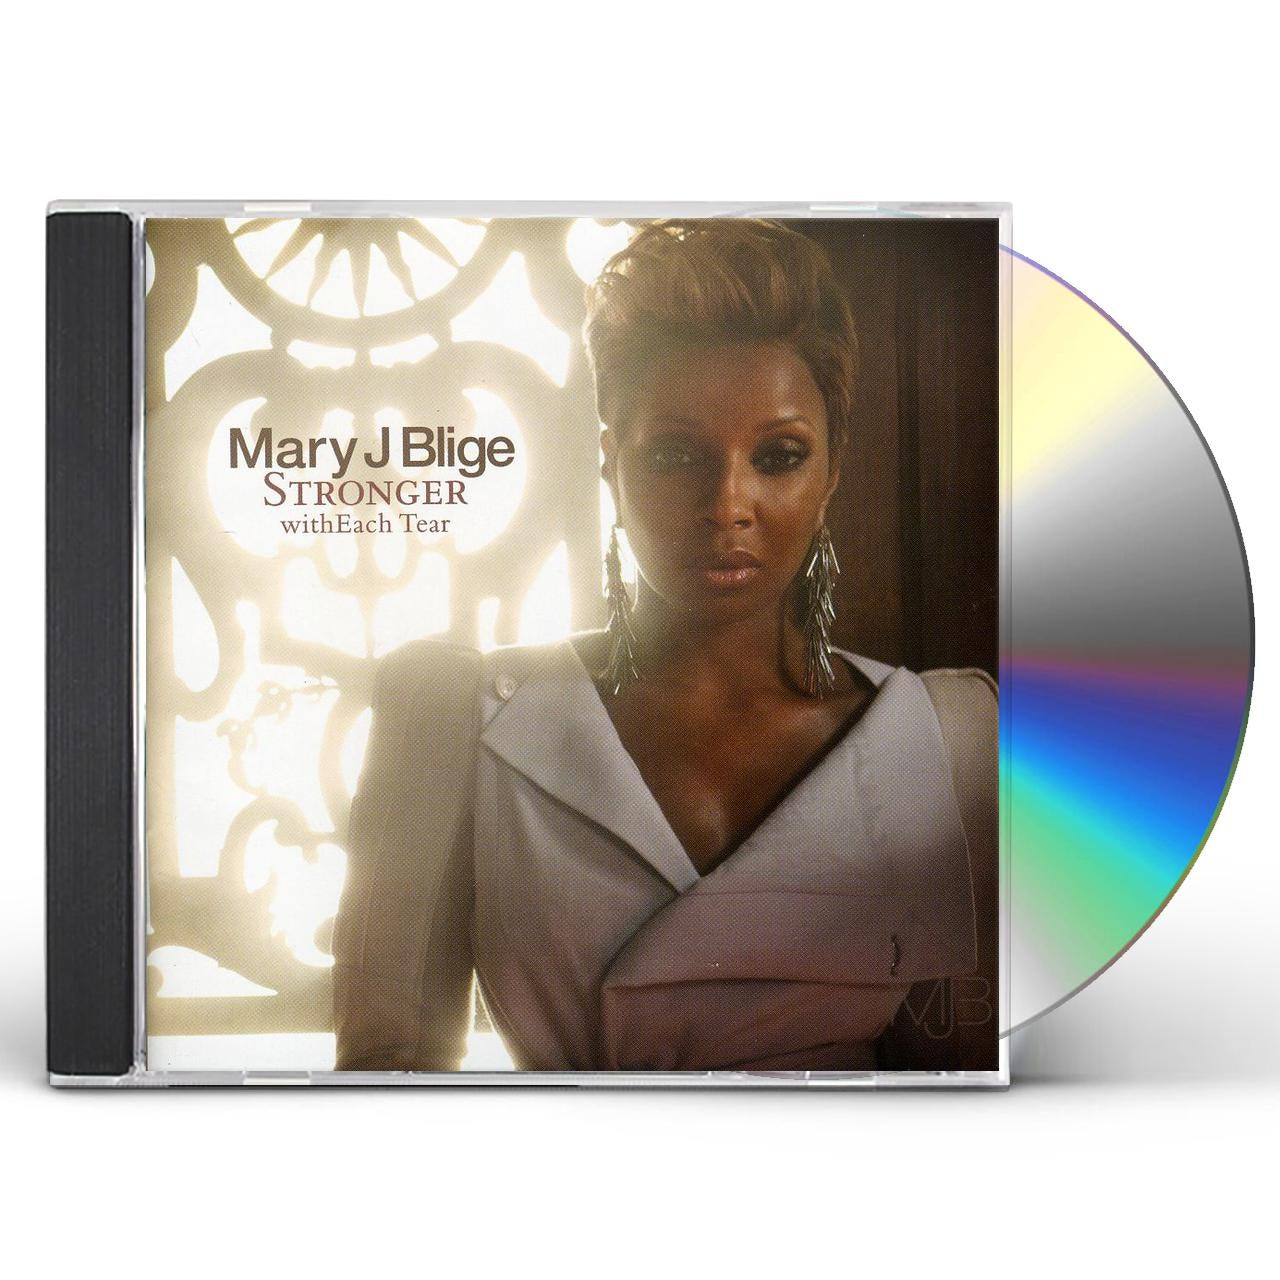 Mary J. Blige STRONGER WITH EACH TEAR CD